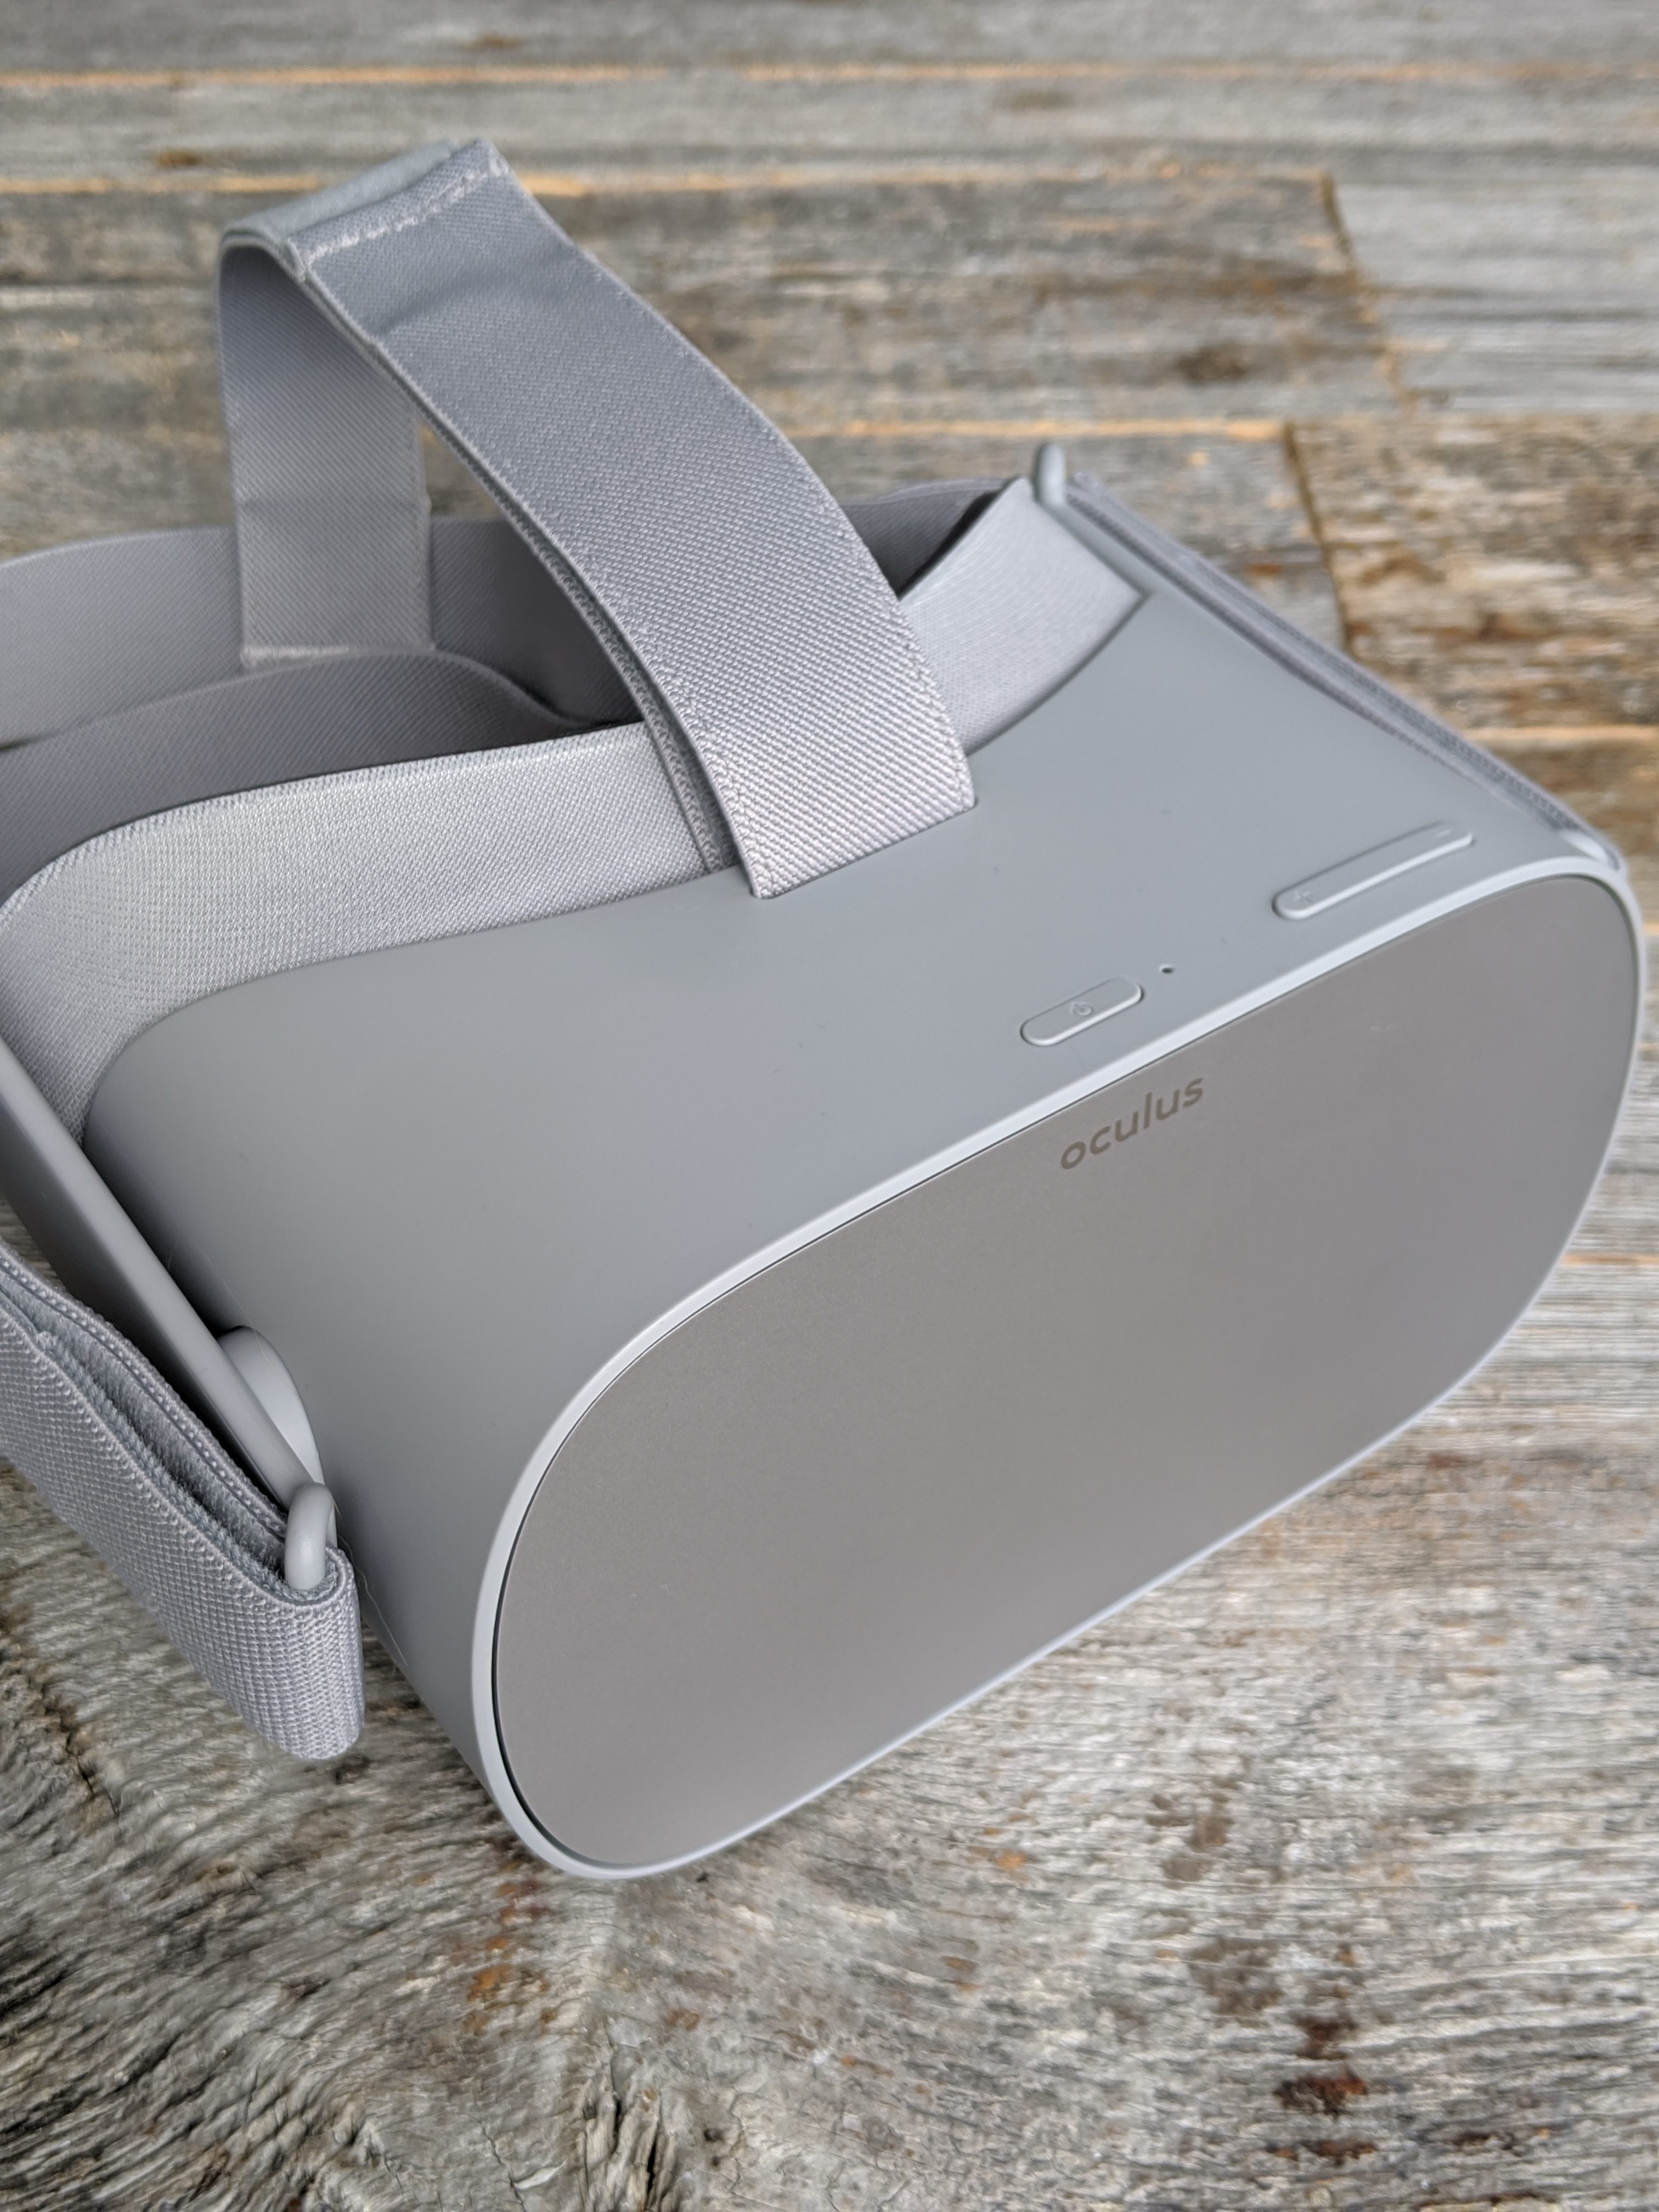 oculus Go Review - The Headset